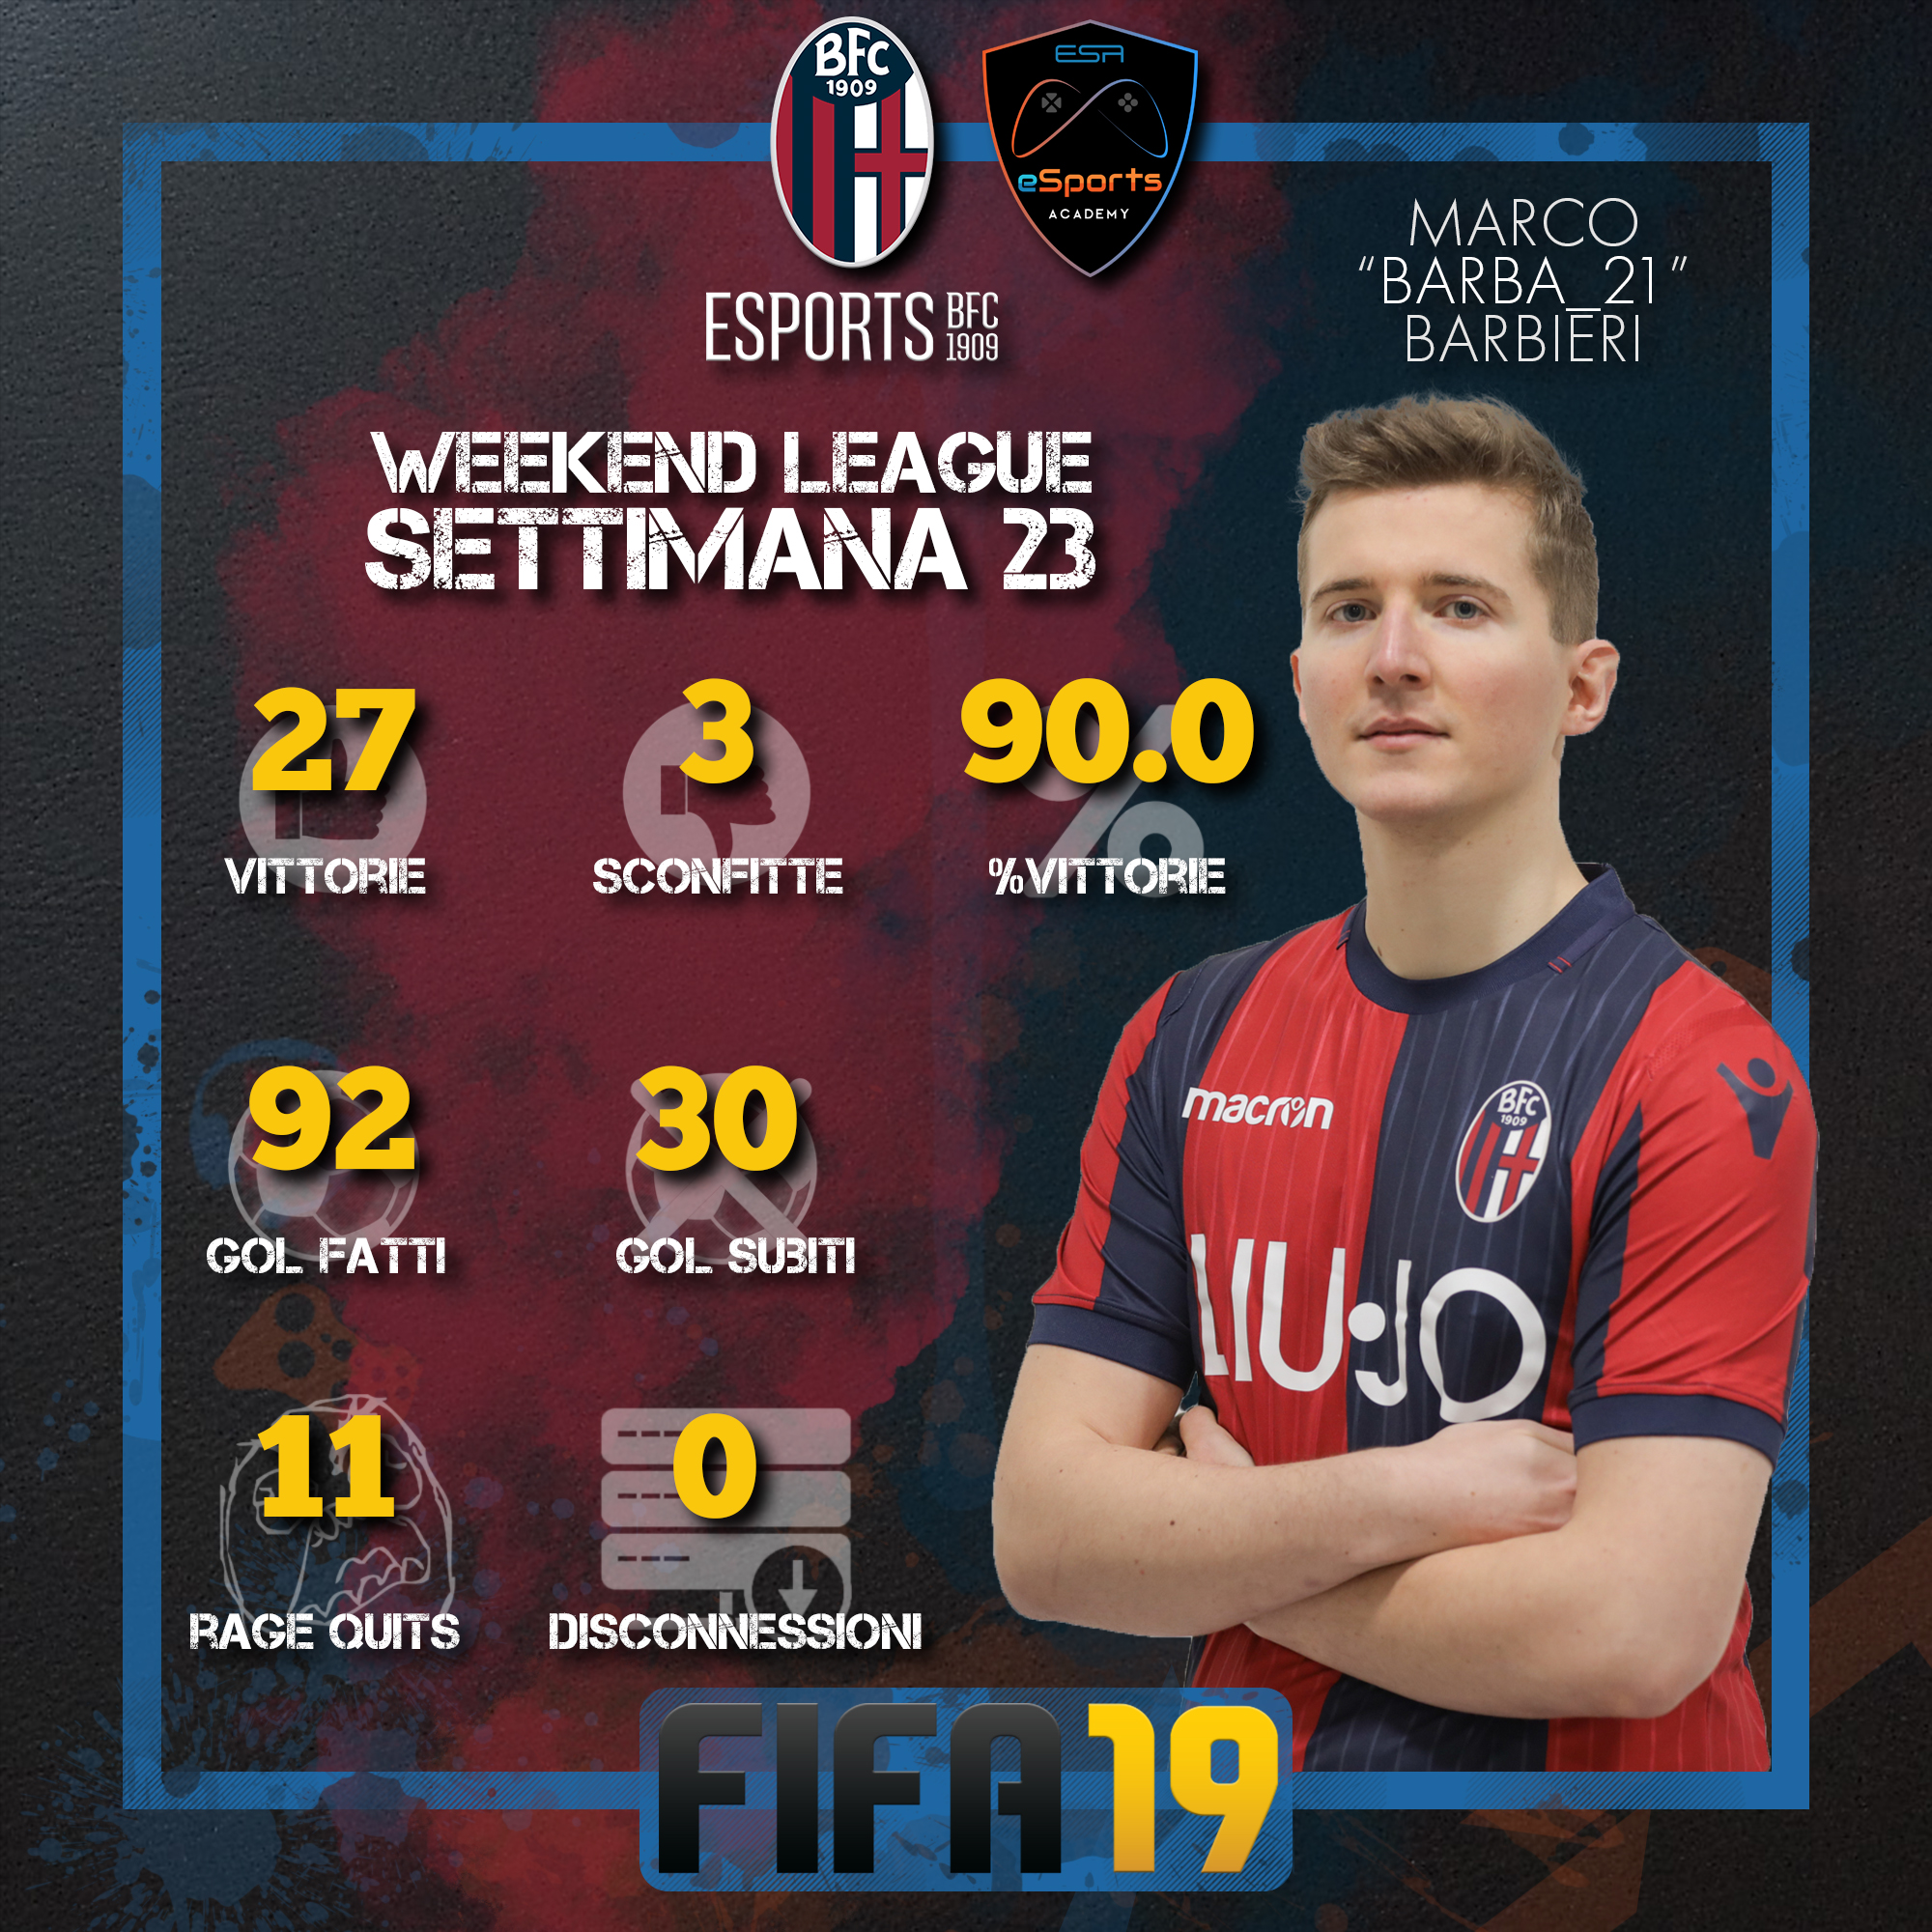 Fifa19_Weekend League_Week23_Barba_21.jpg